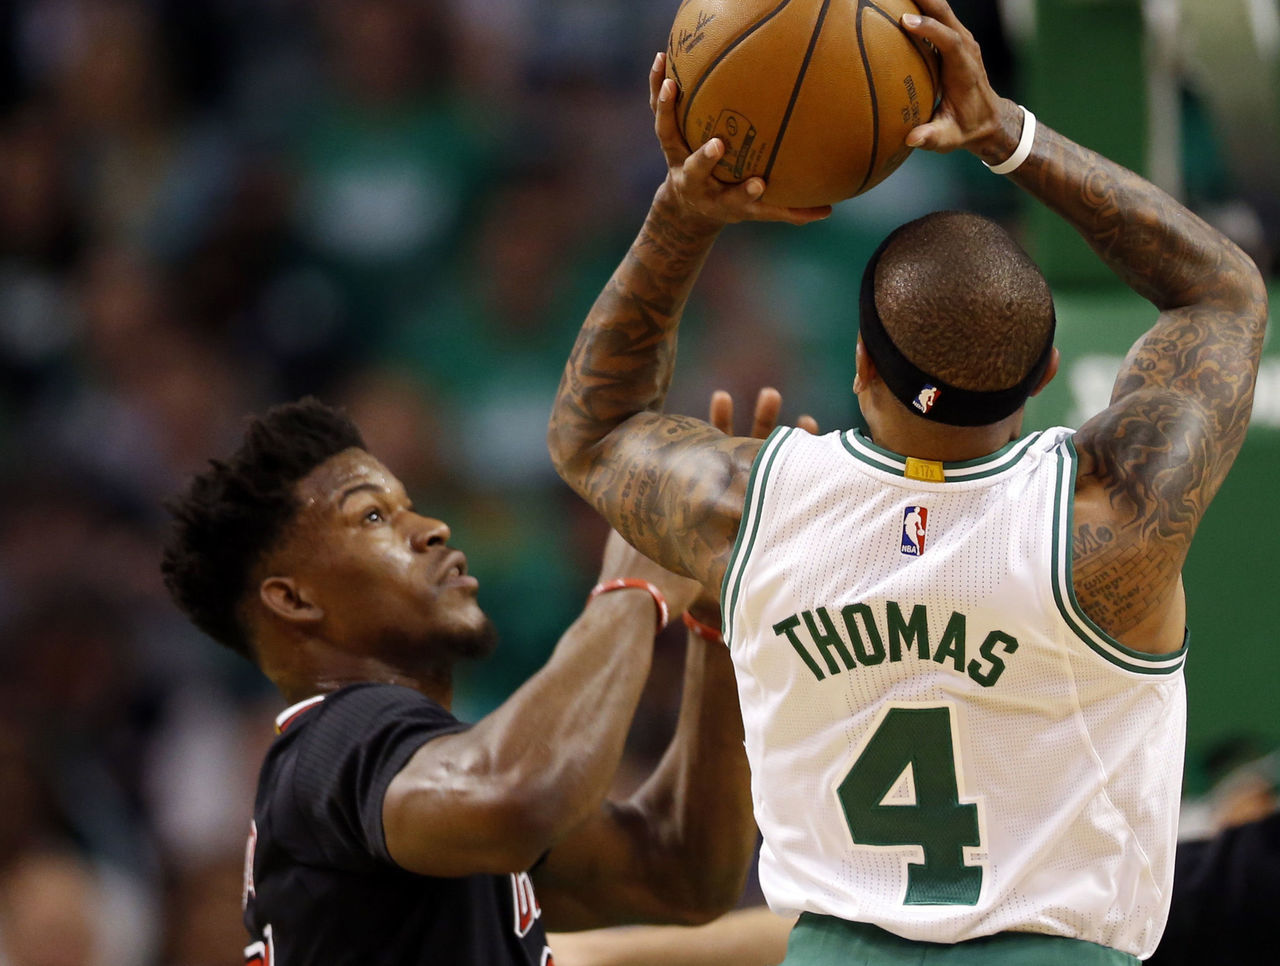 Cropped 2017 04 19t015751z 784645324 nocid rtrmadp 3 nba playoffs chicago bulls at boston celtics